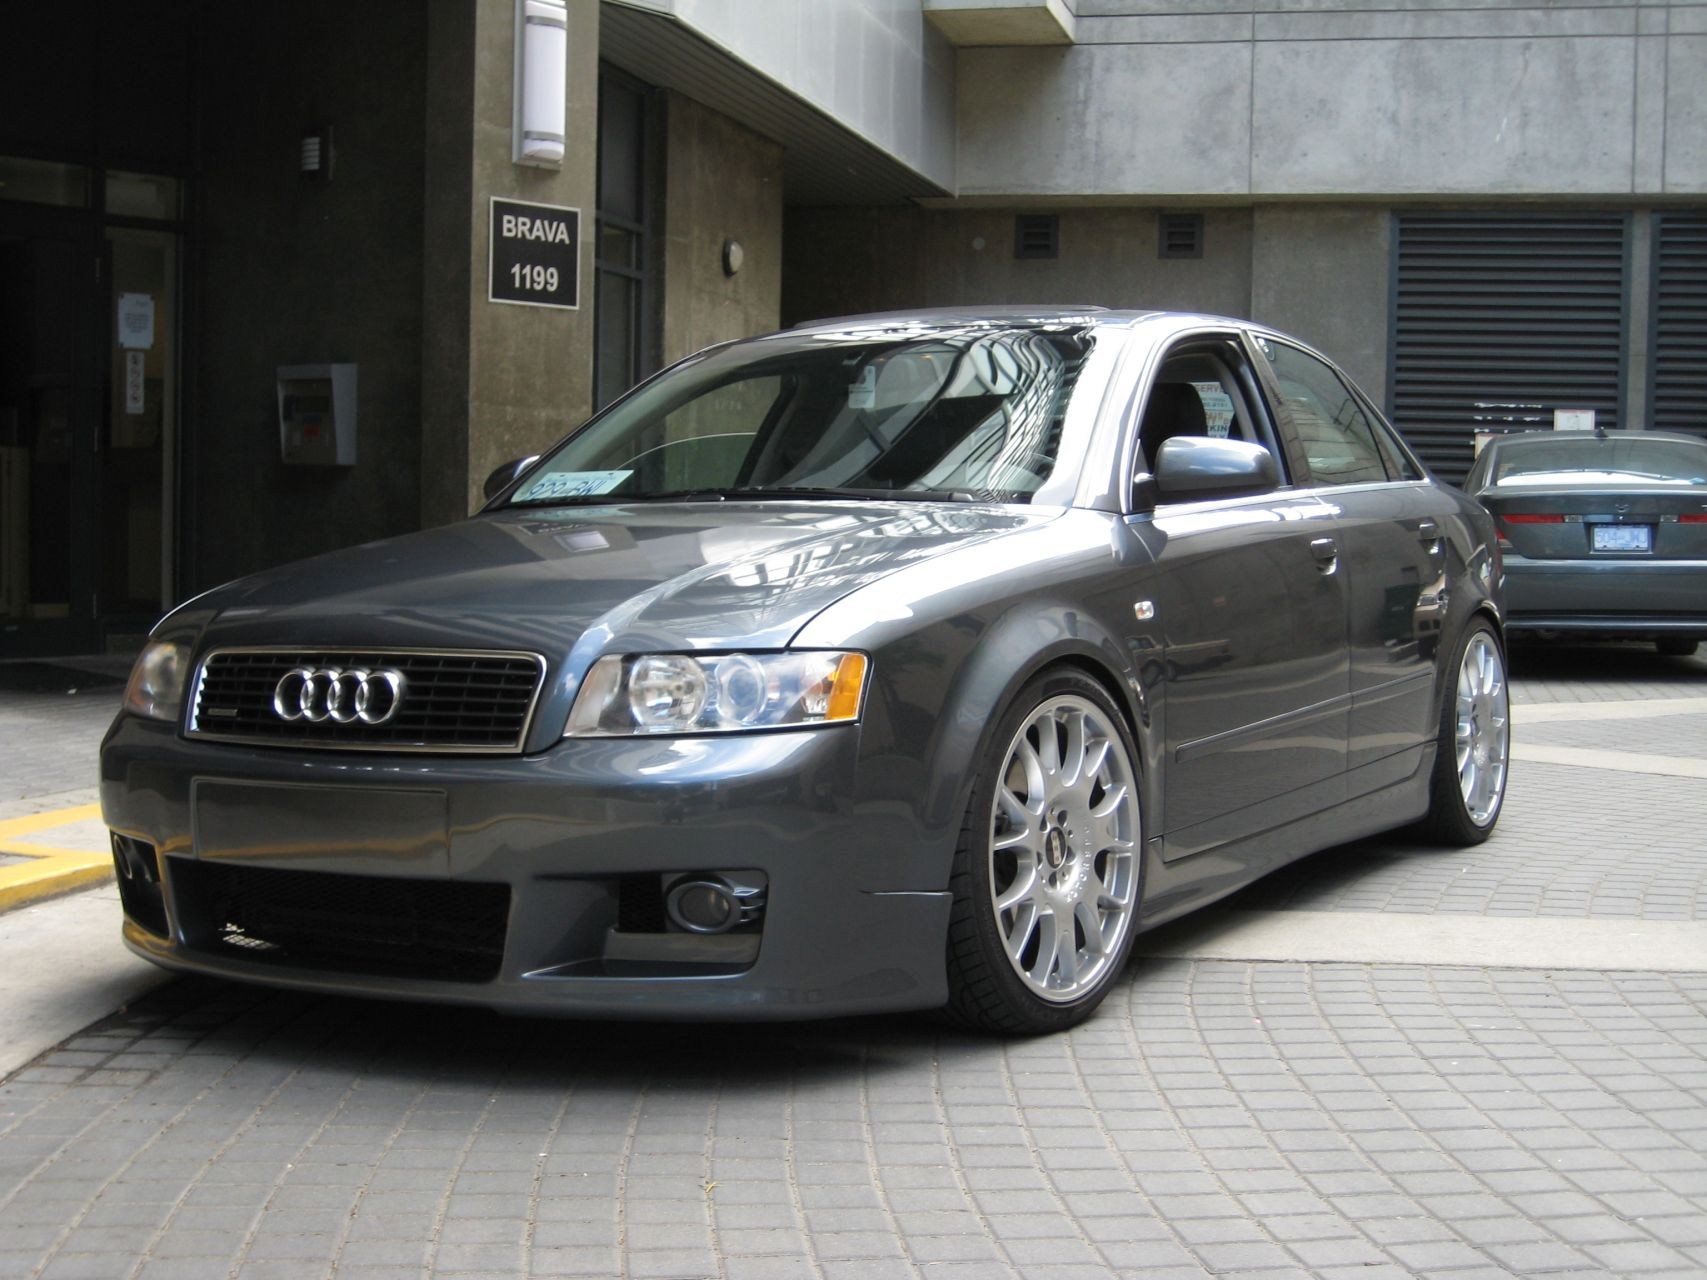 2003 audi a4 1 8t 5 spd quattro best offer takes it 14500. Black Bedroom Furniture Sets. Home Design Ideas